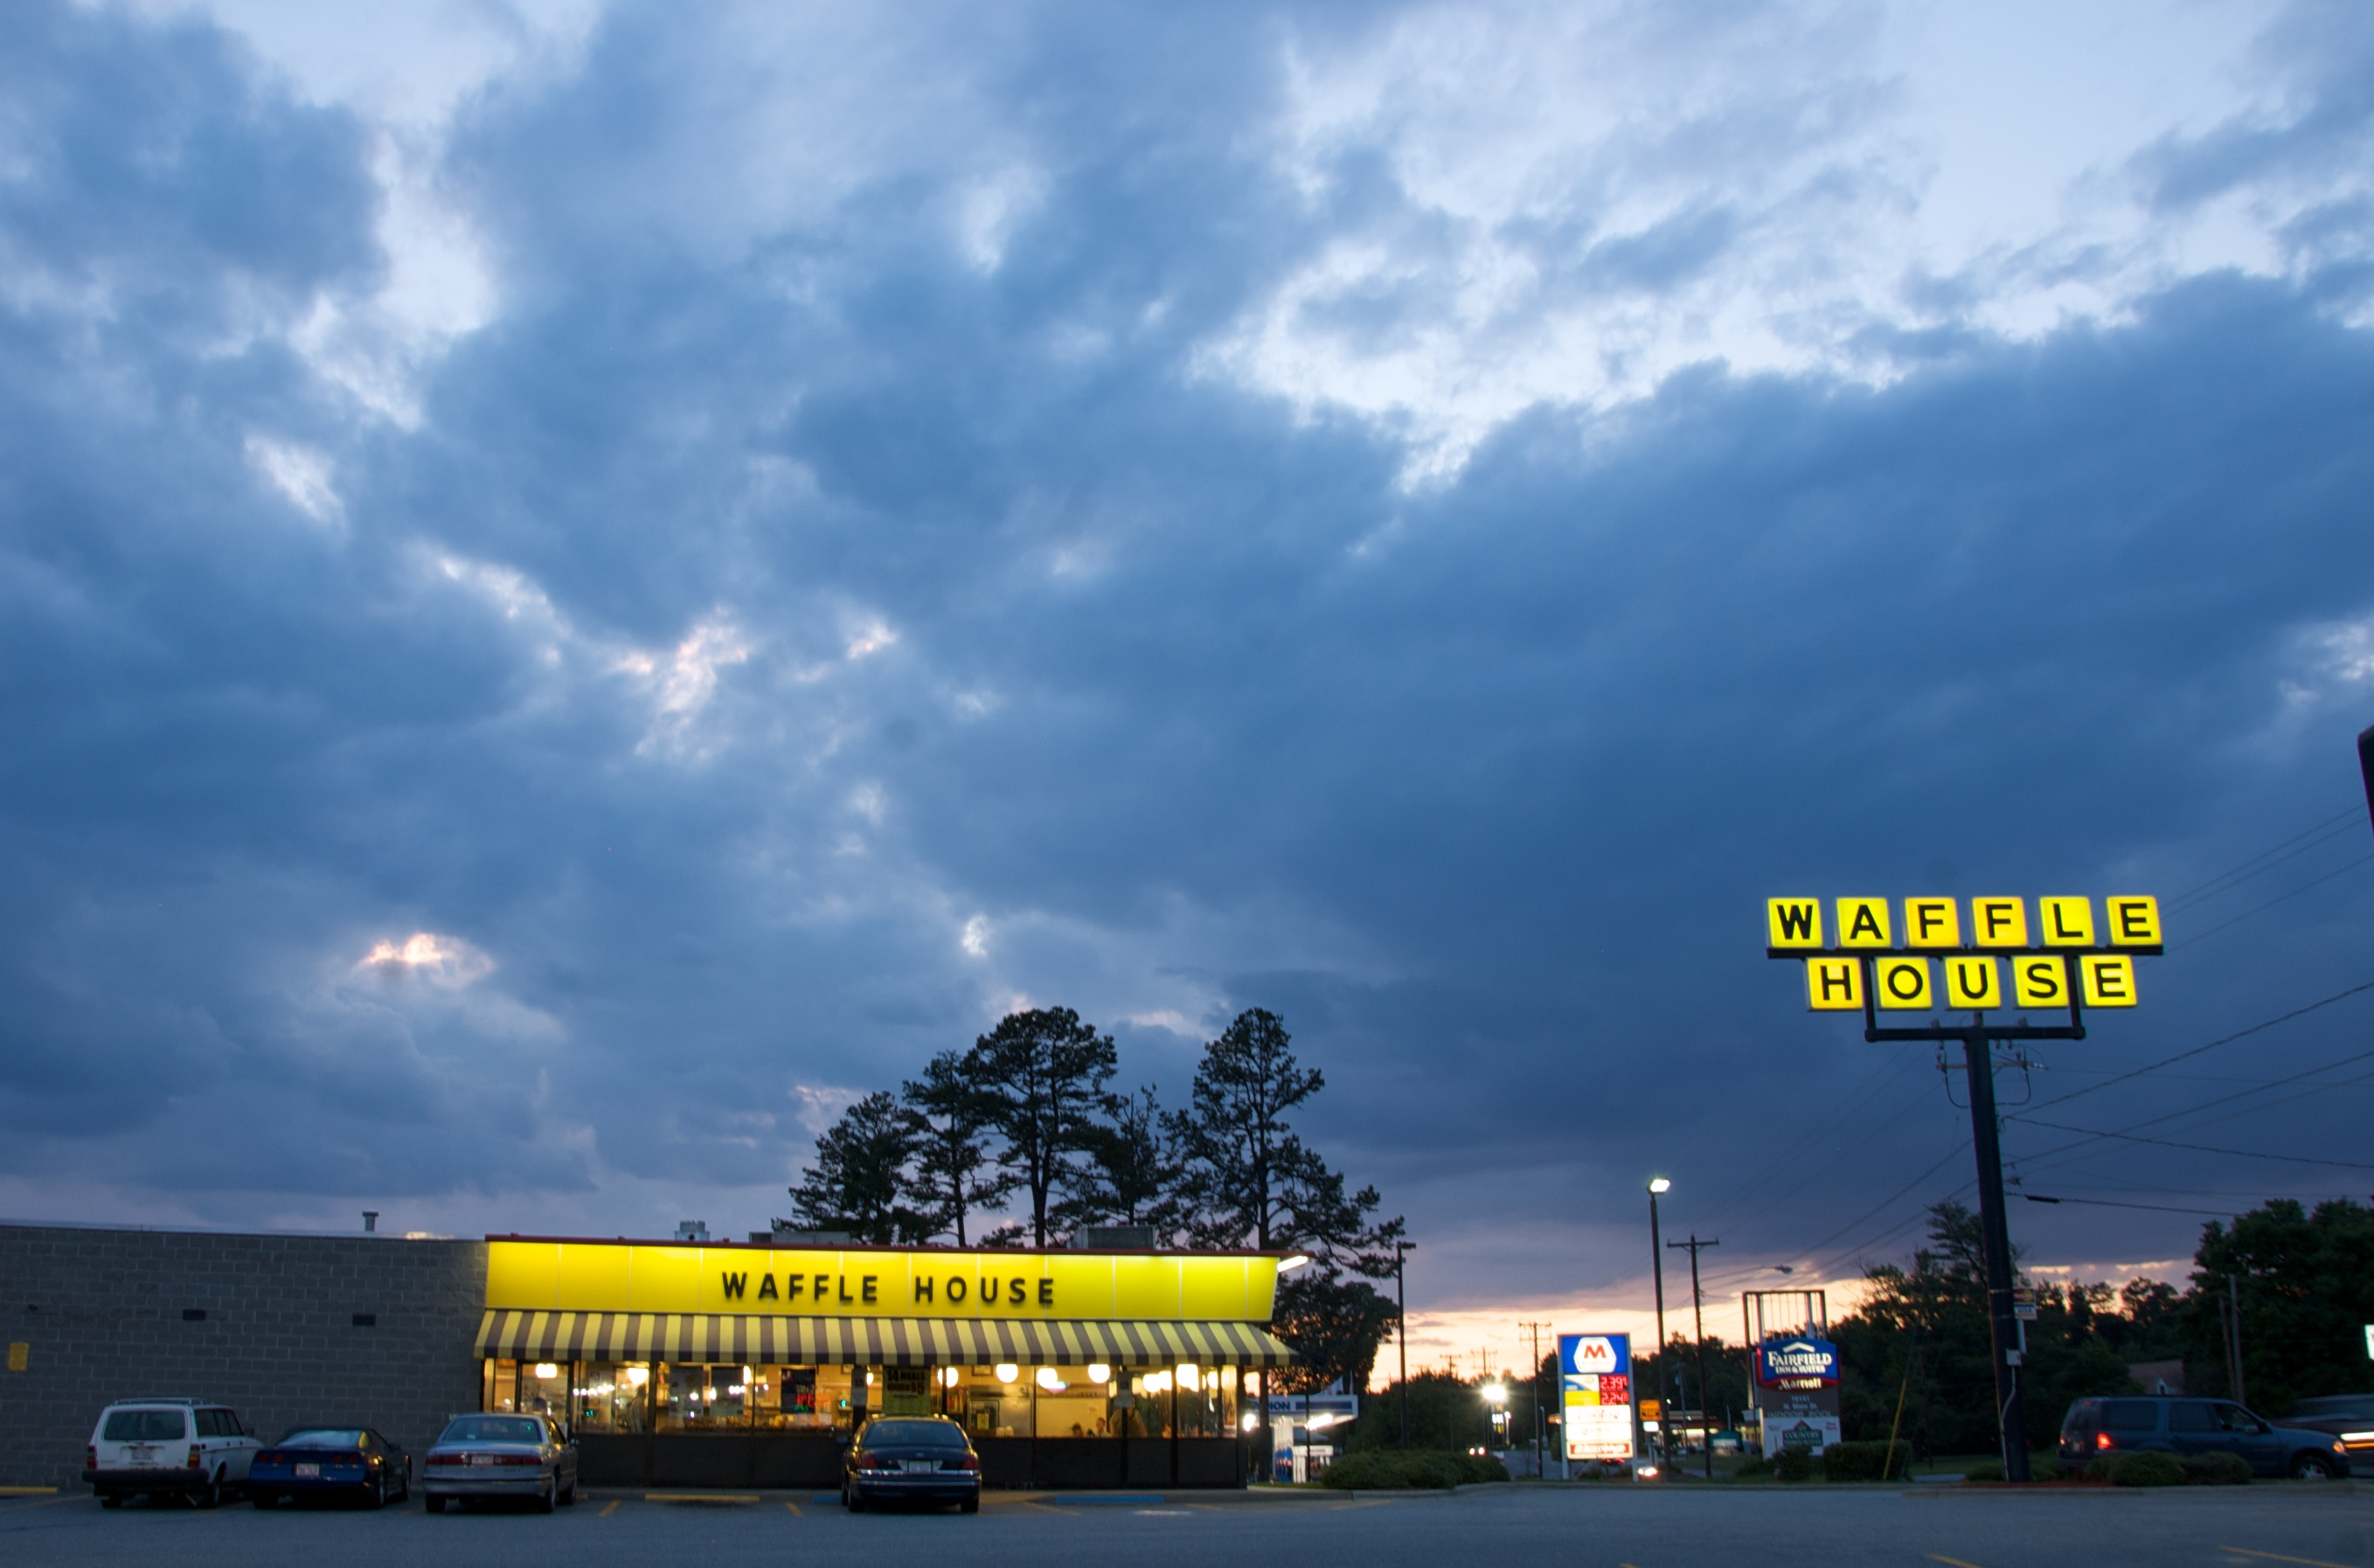 Waffle House in a storm